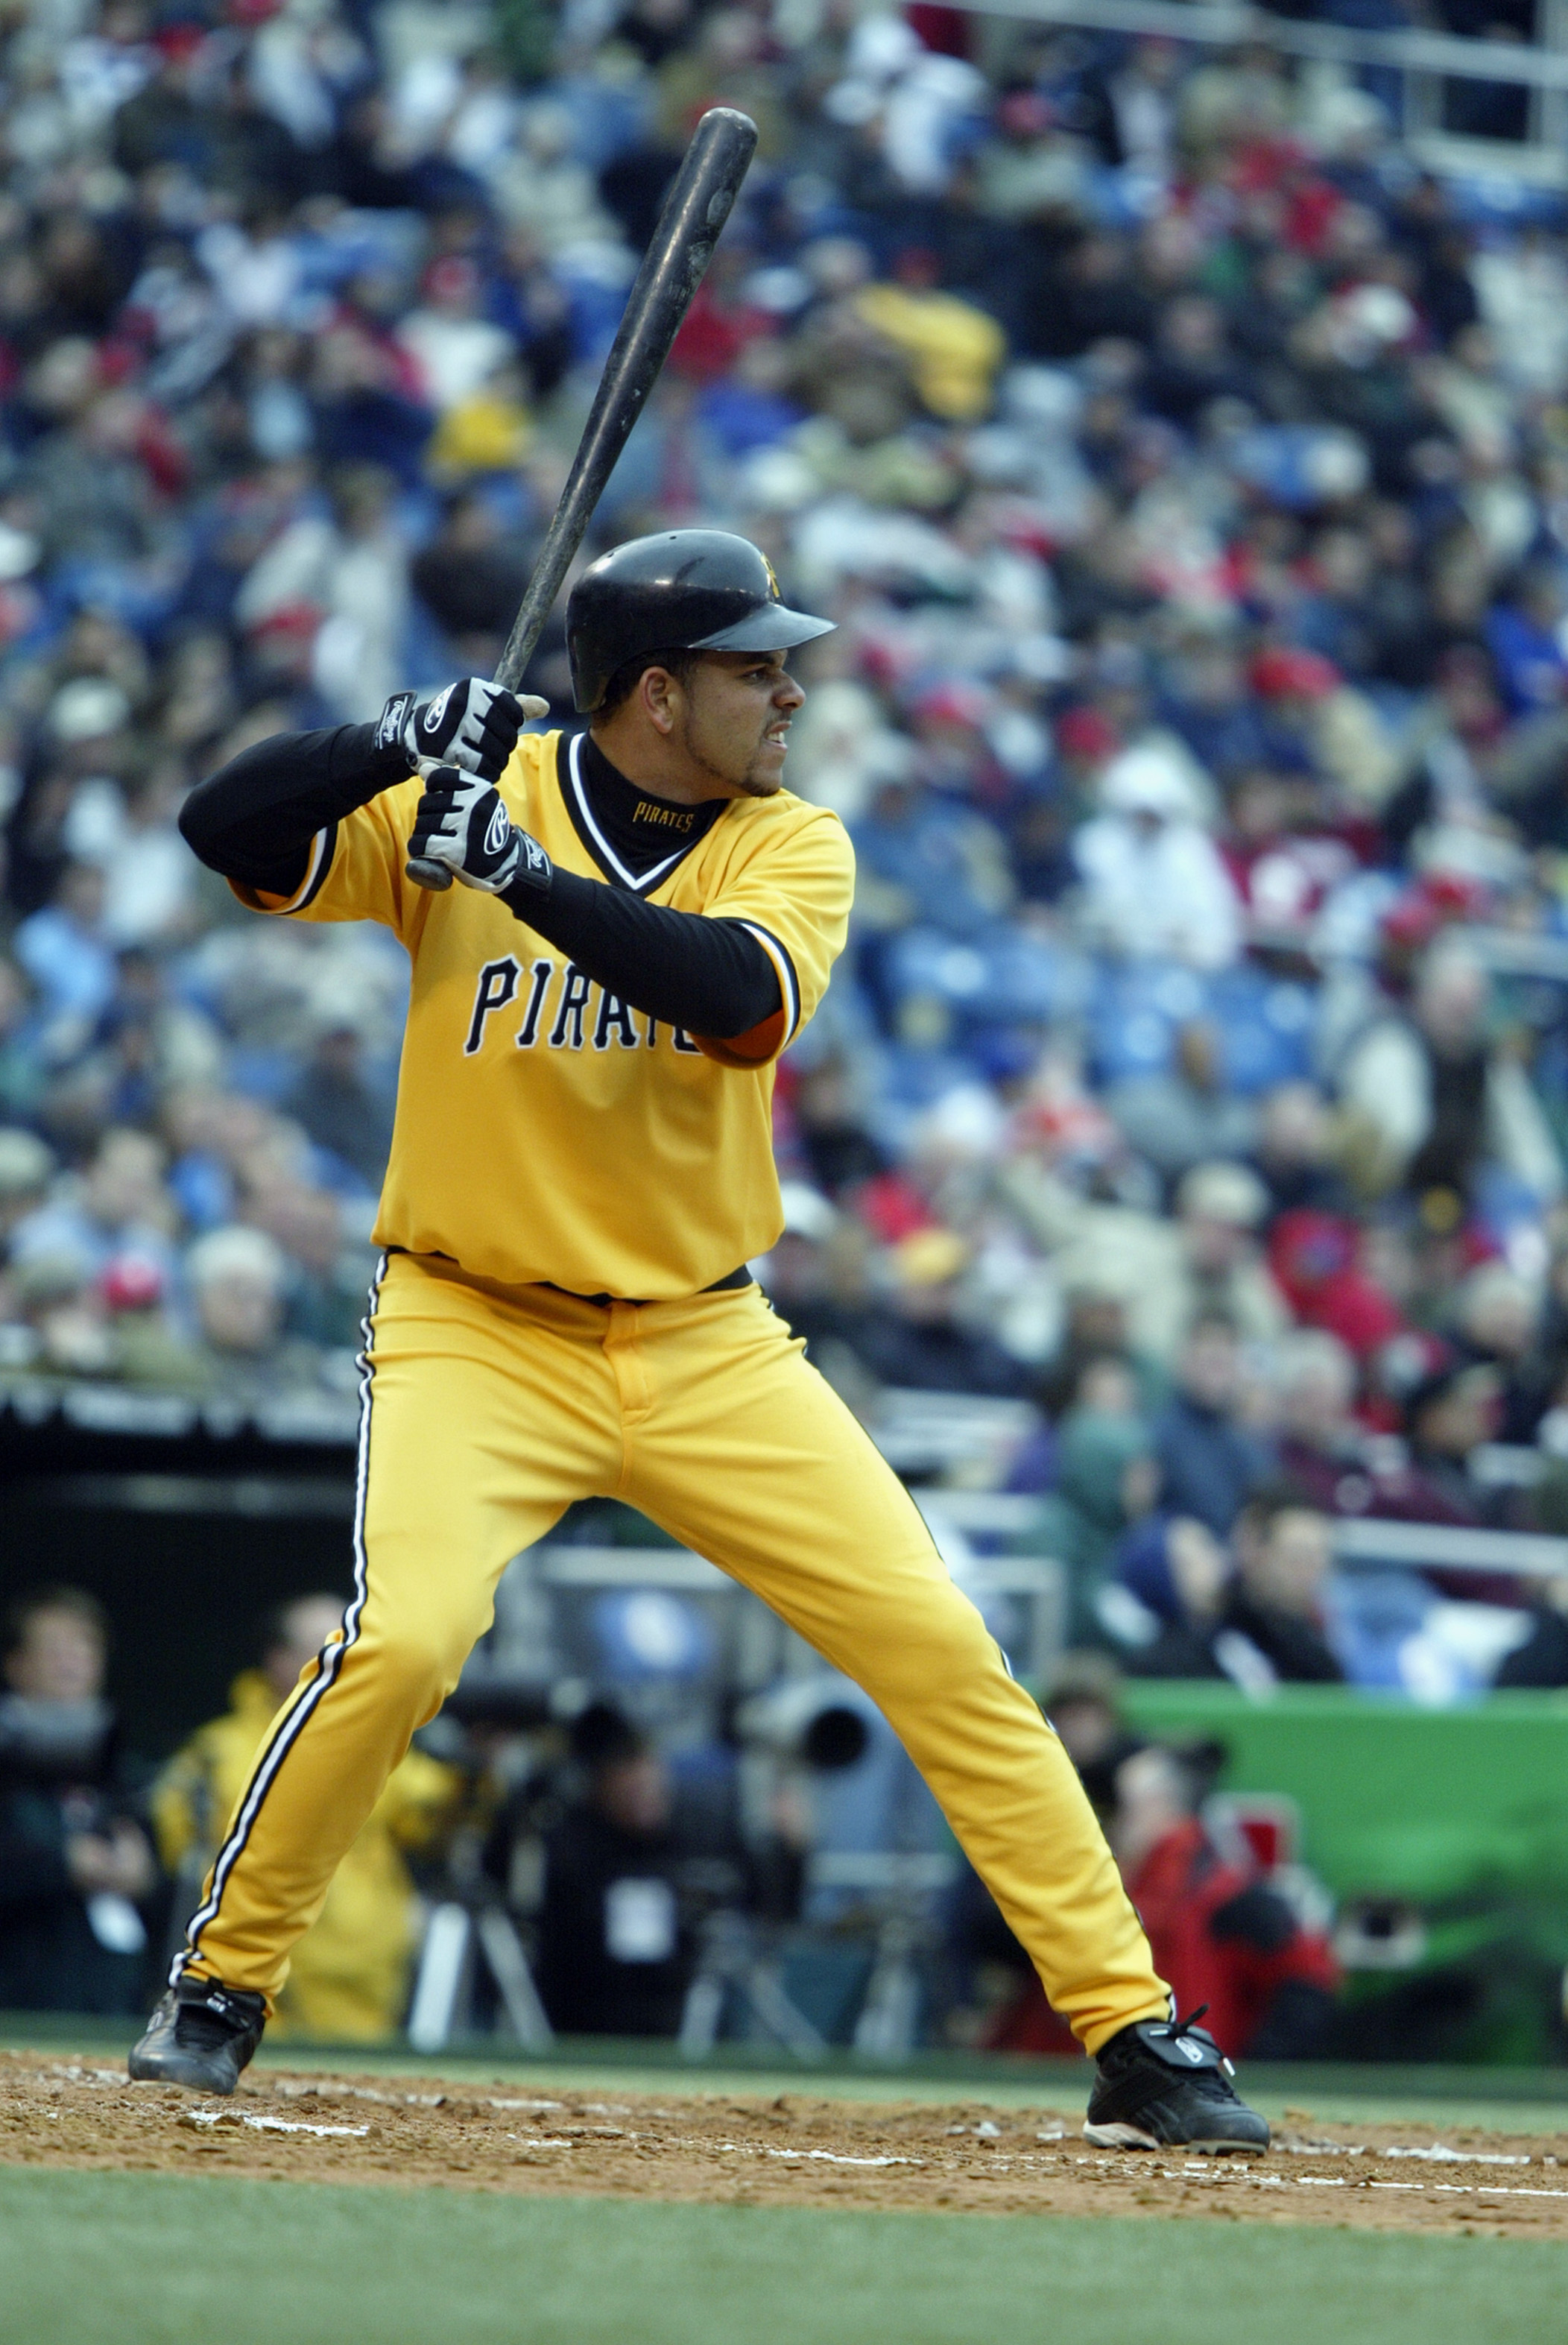 PHILADELPHIA - APRIL 4:  Aramis Ramirez #16 of the Pittsburgh Pirates stands at bat during the game against the Philadelphia Phillies at Veterans Stadium on April 4, 2003 in Philadelphia, Pennsylvania.  The Pirates defeated the Phillies 9-1.  (Photo by Al